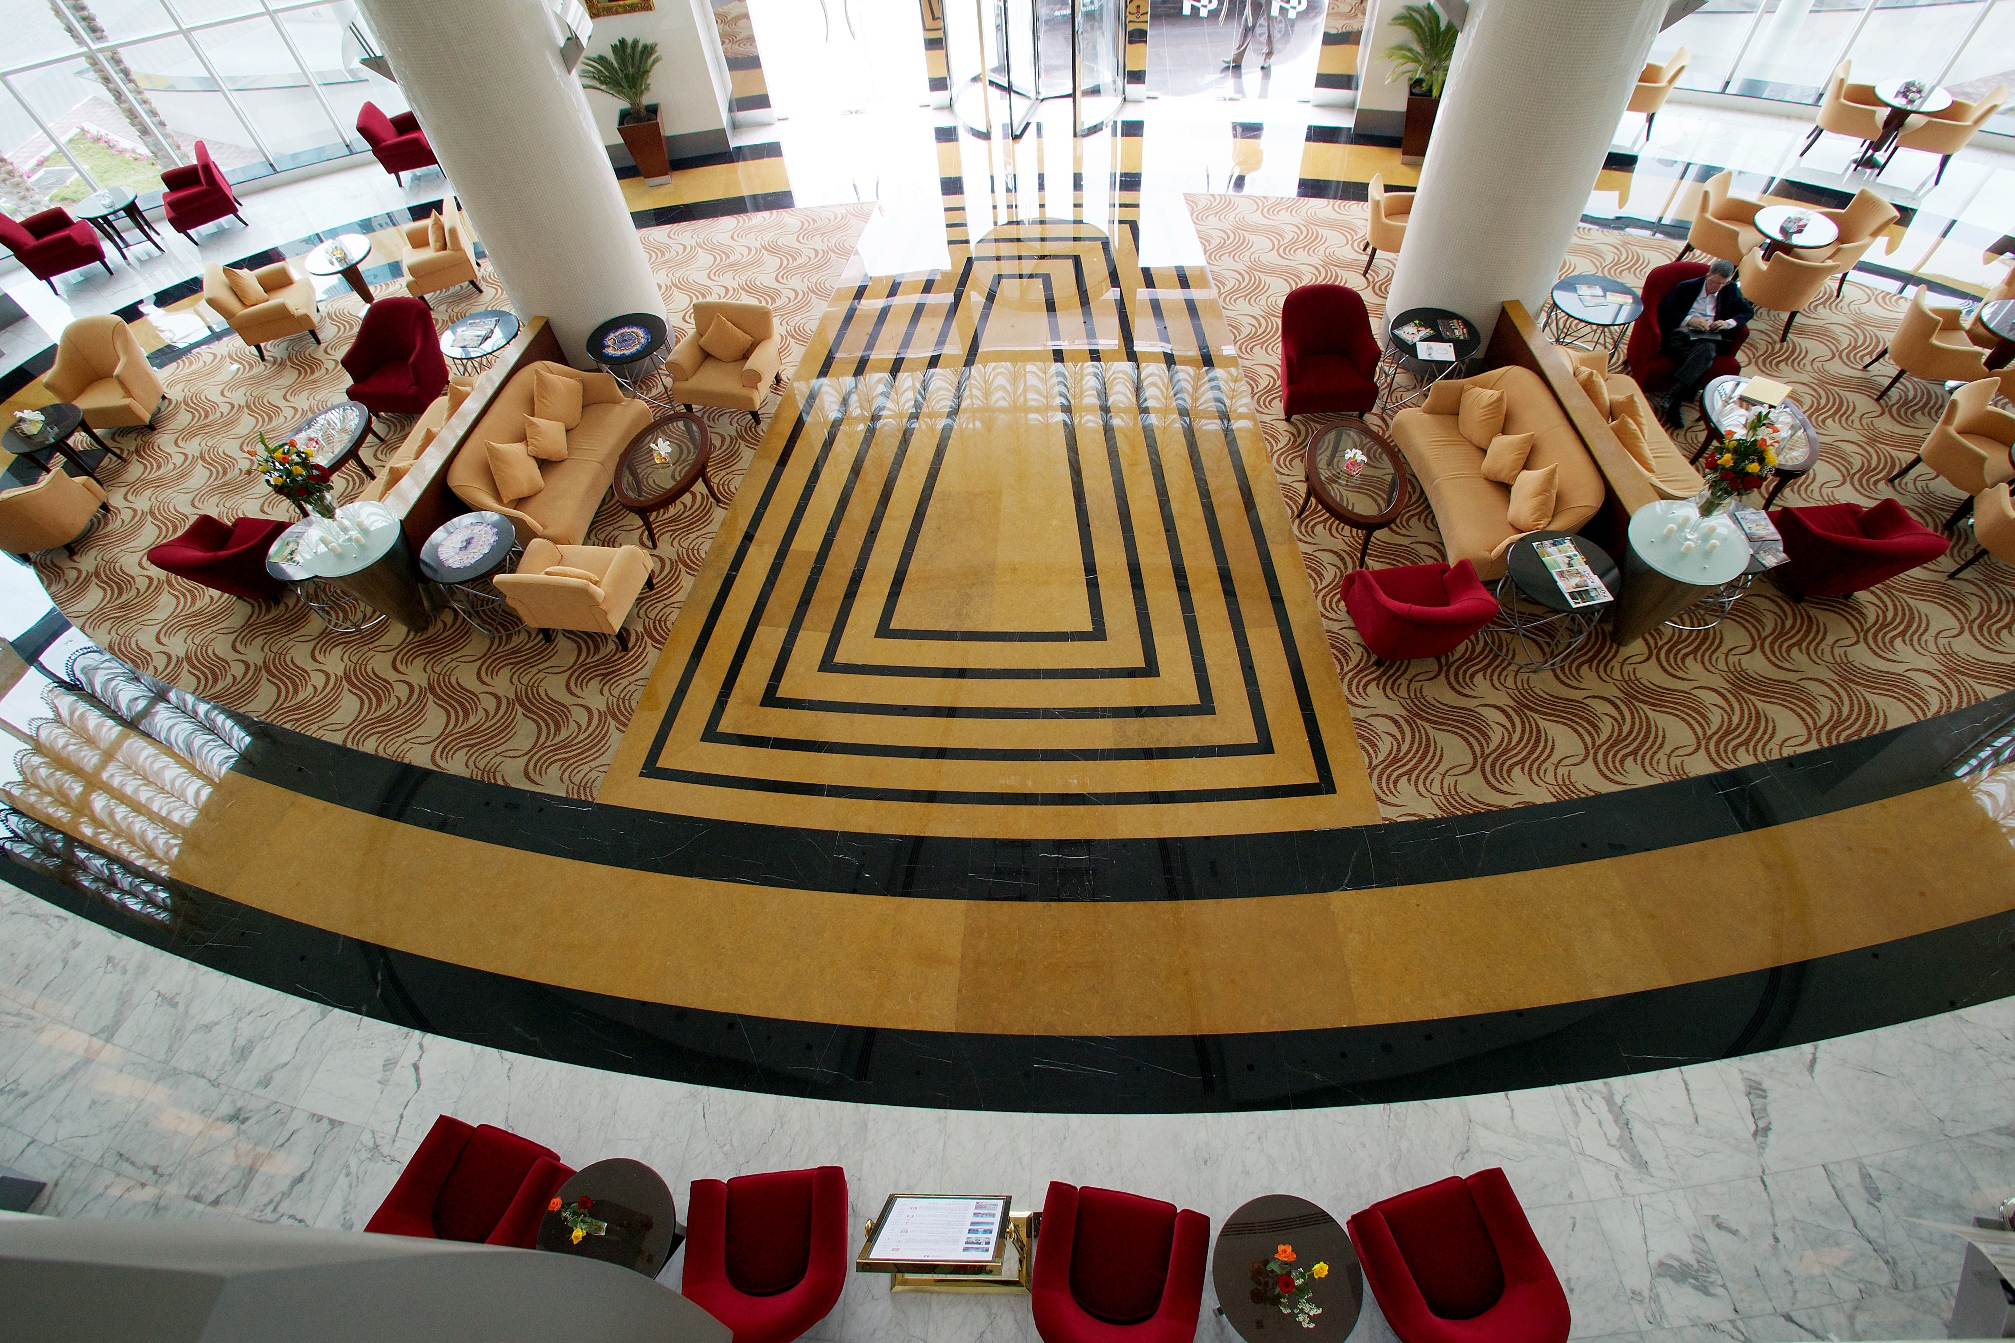 Concorde Hotel Exterior Swimming Pool Lobby